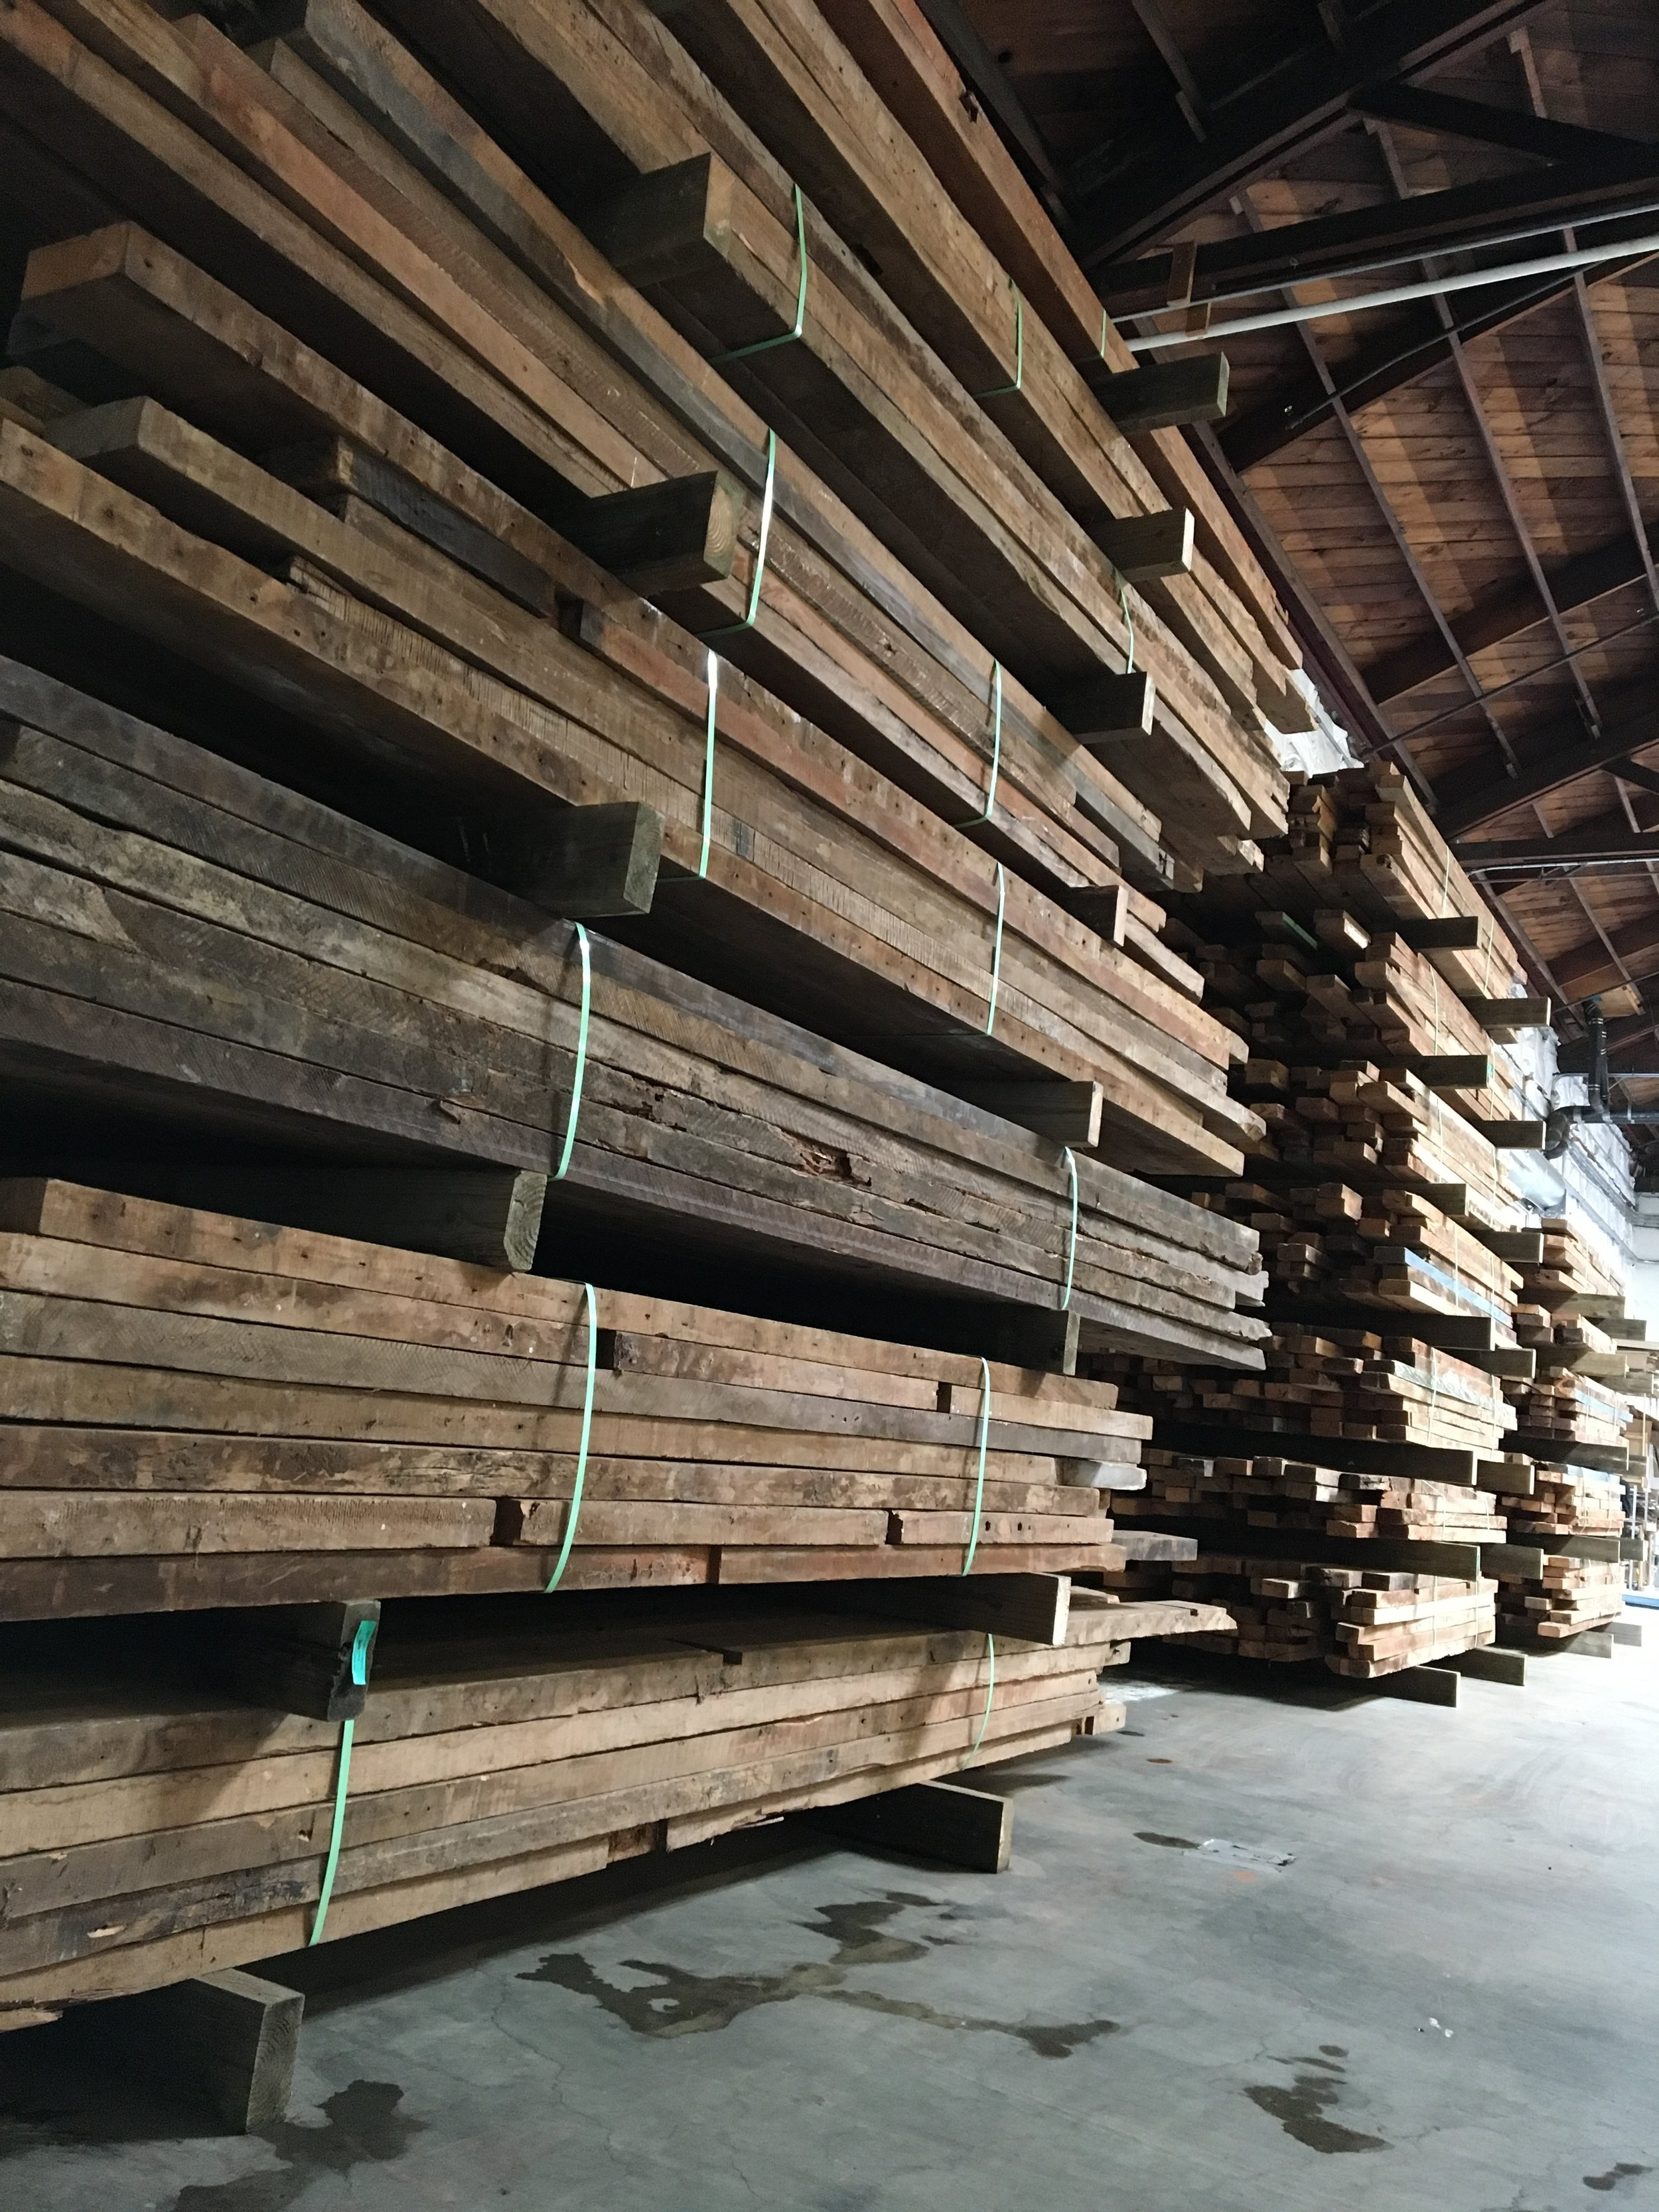 Stacks on stacks of reclaimed timbers and boards